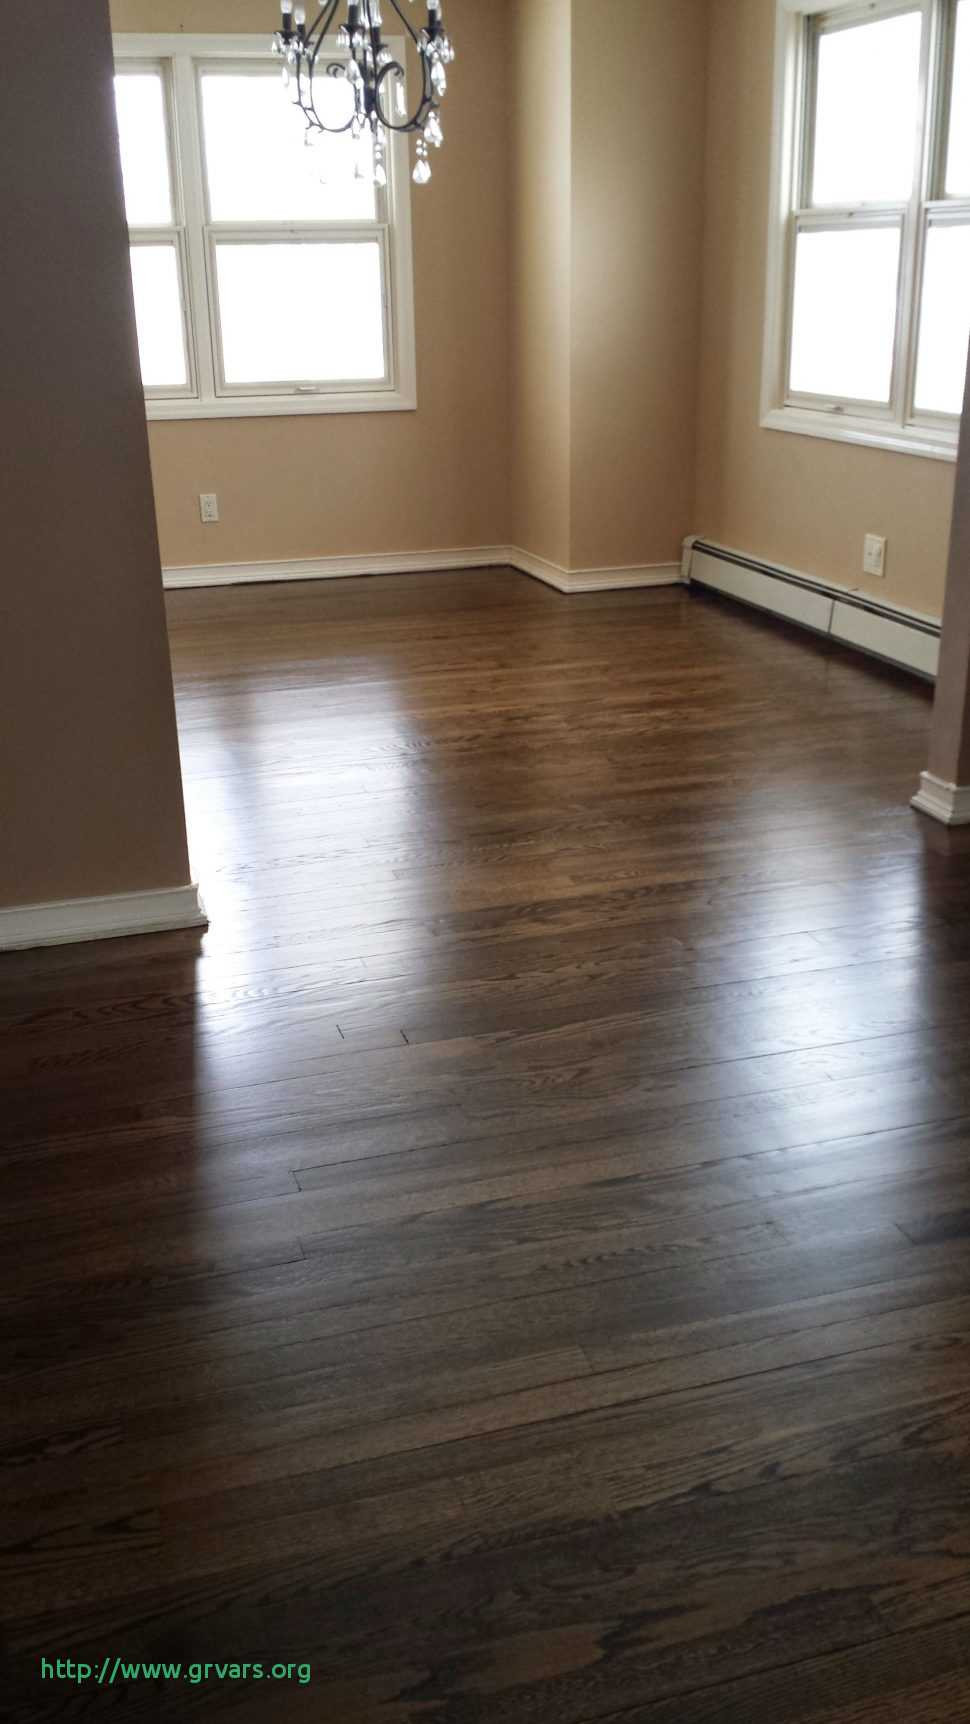 installing engineered hardwood floors yourself of 23 meilleur de how to refinish engineered hardwood floors yourself regarding interior amusing refinishingod floors diy network refinish parquet without sanding buffing with pet stains refinishing hardwood